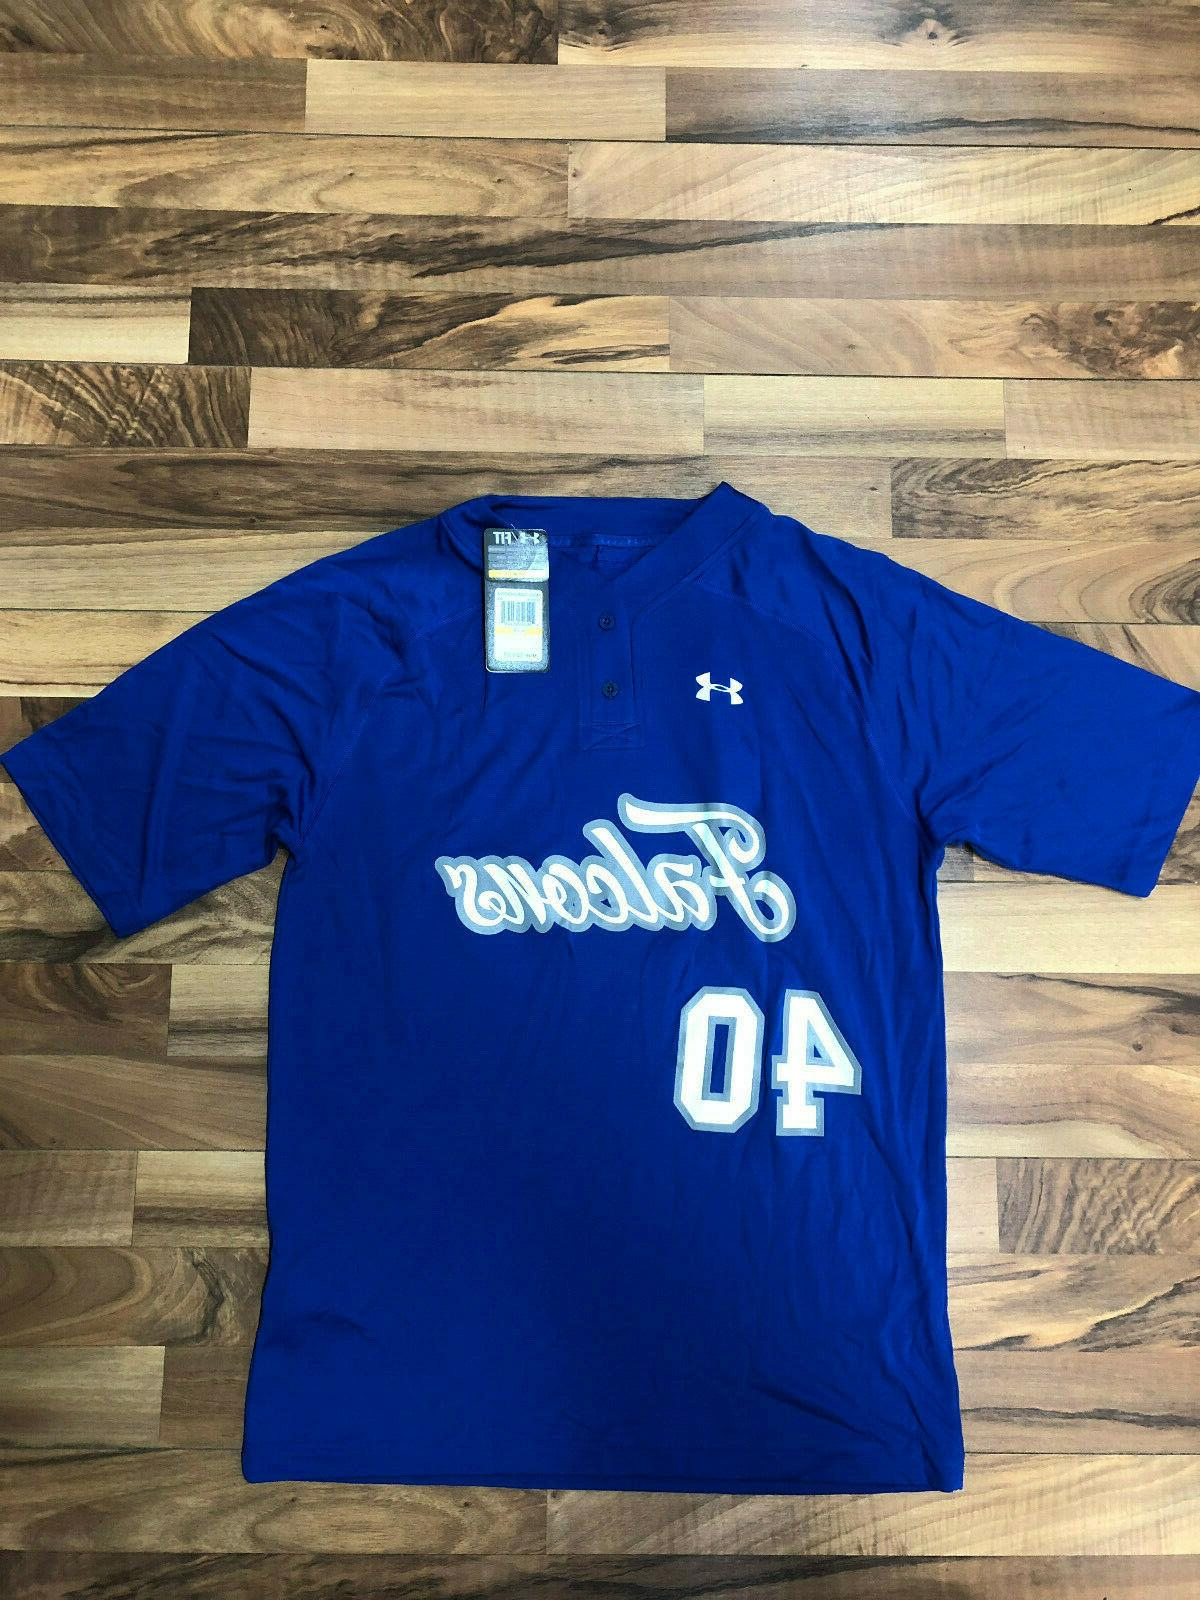 Lot of 20 NWT Under Armour Shirt Heat Gear Blue Mens L 2XL